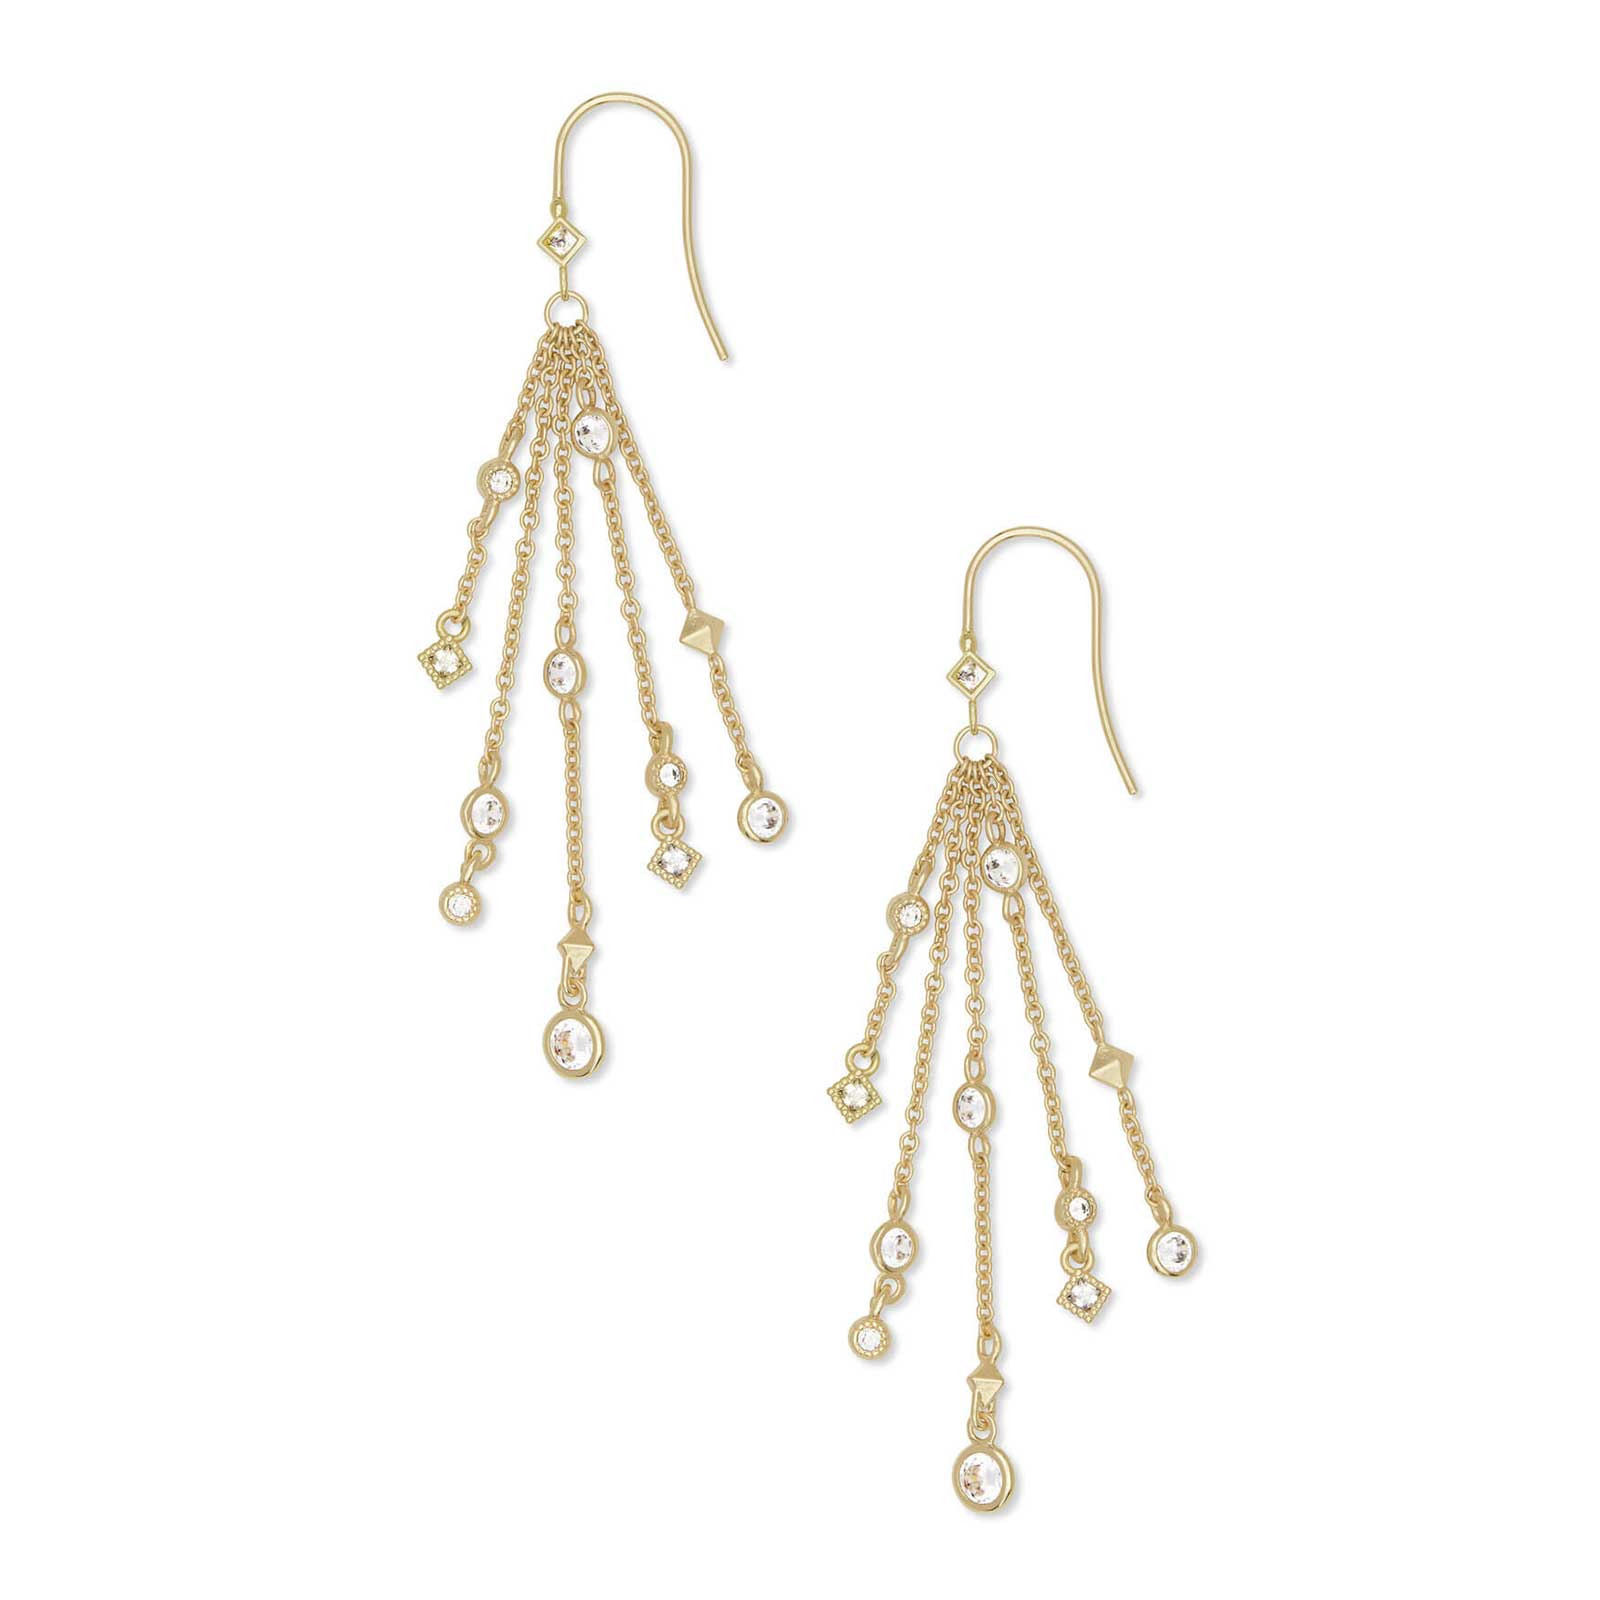 Kendra Scott Wilma Drop Earrings - Gabrielle's Biloxi